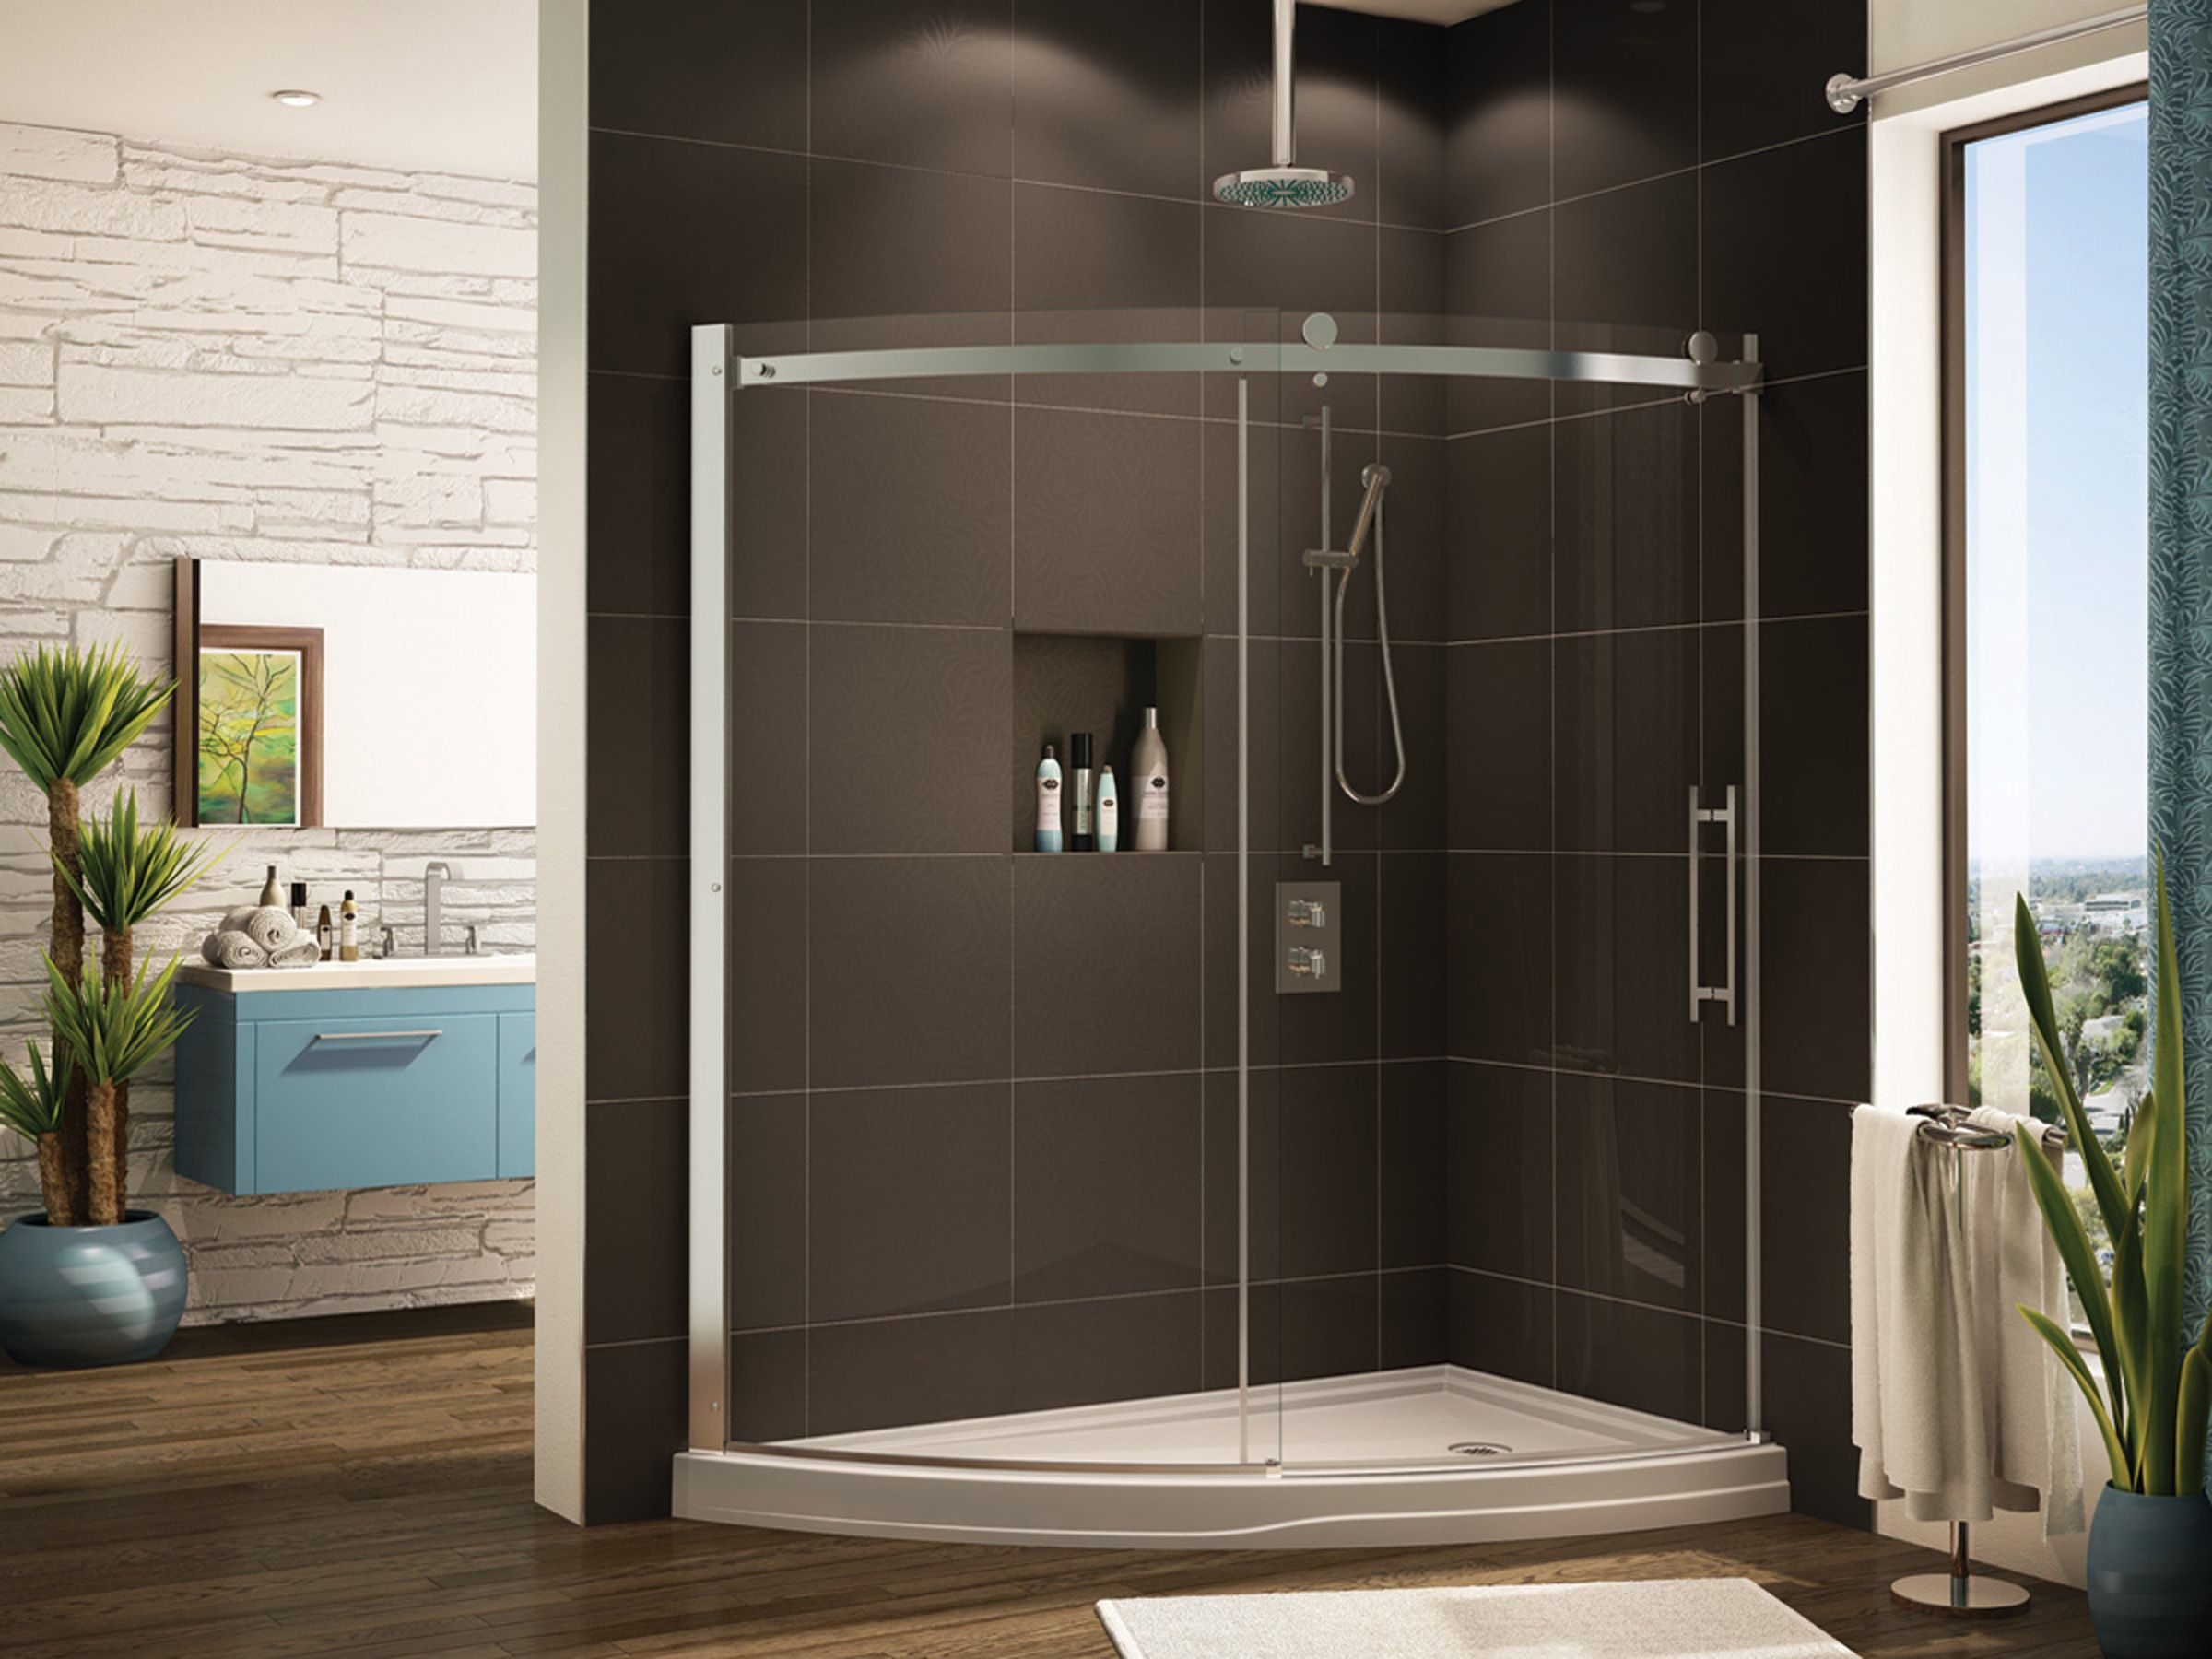 Moden Bathroom With Curved Glass Shower Door And Panel By